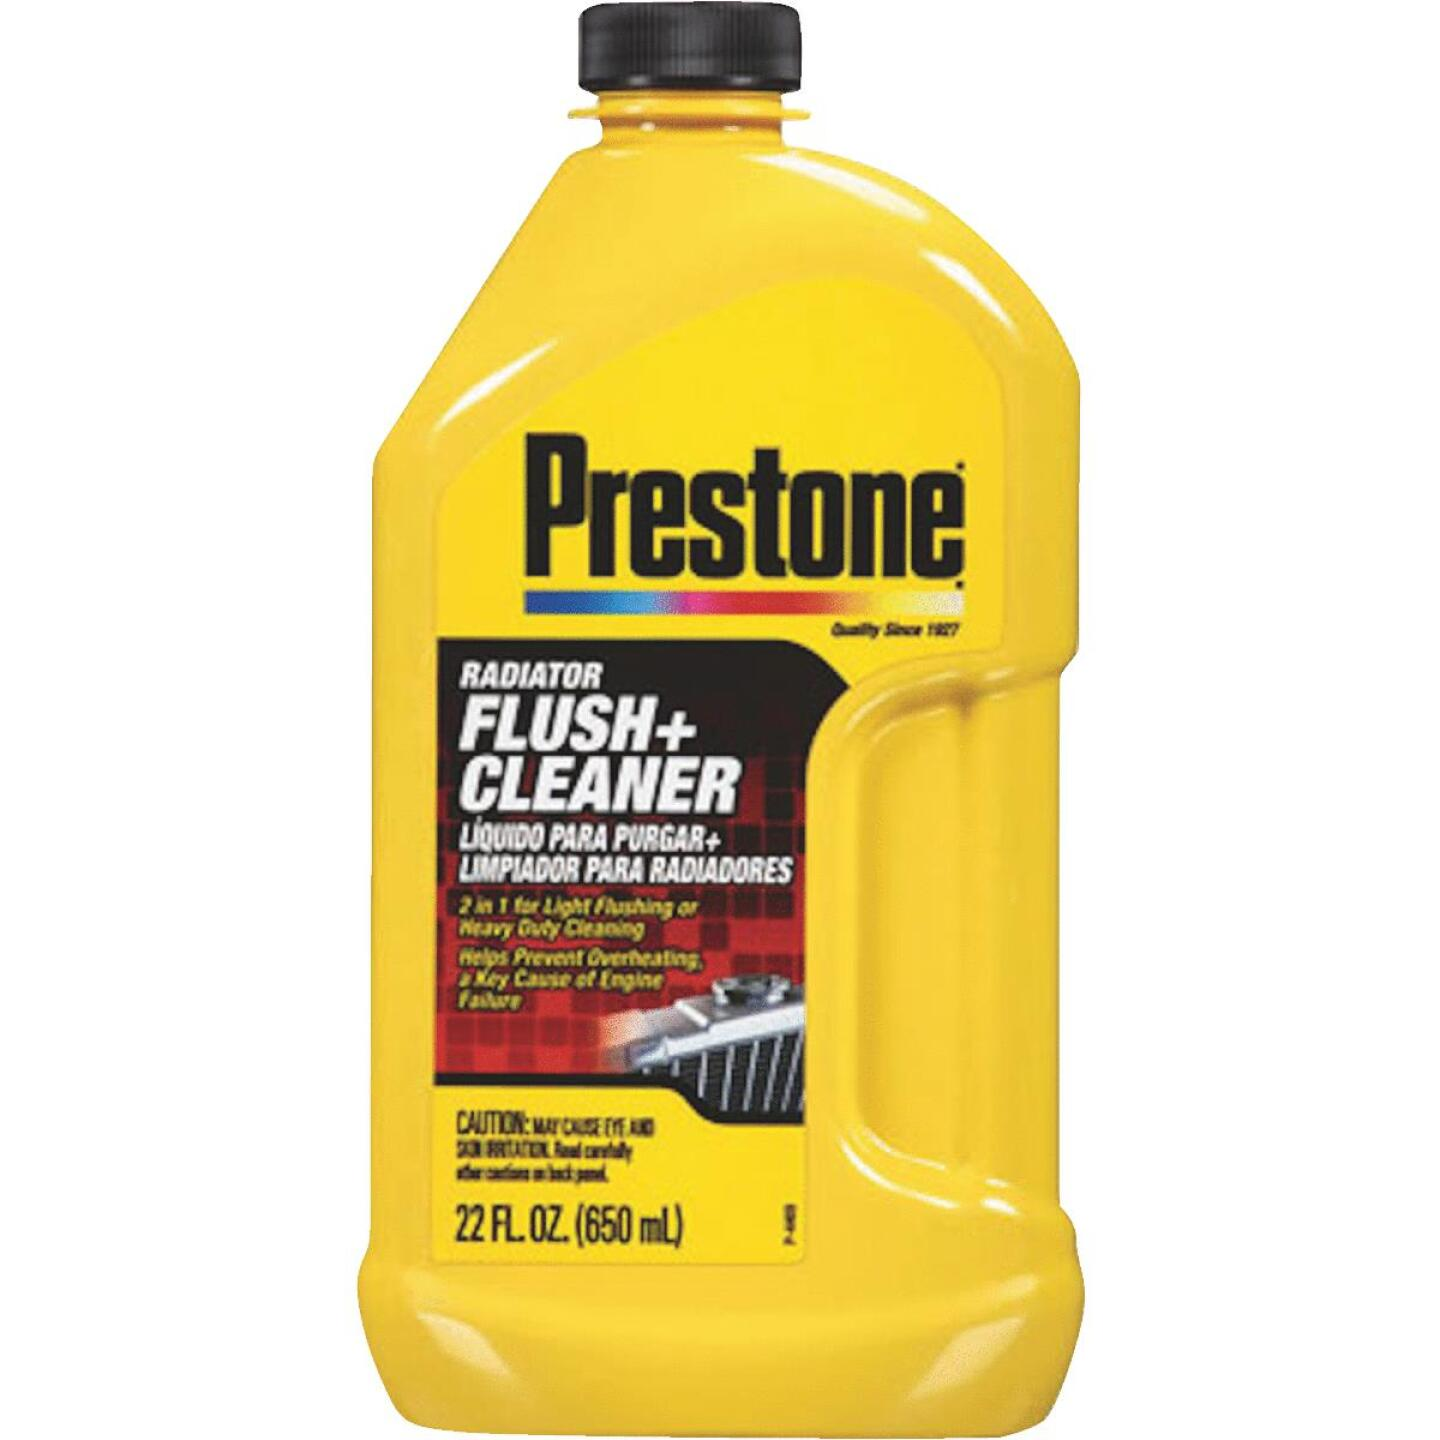 Prestone 22 Oz. Radiator Flush + Cleaner Image 1